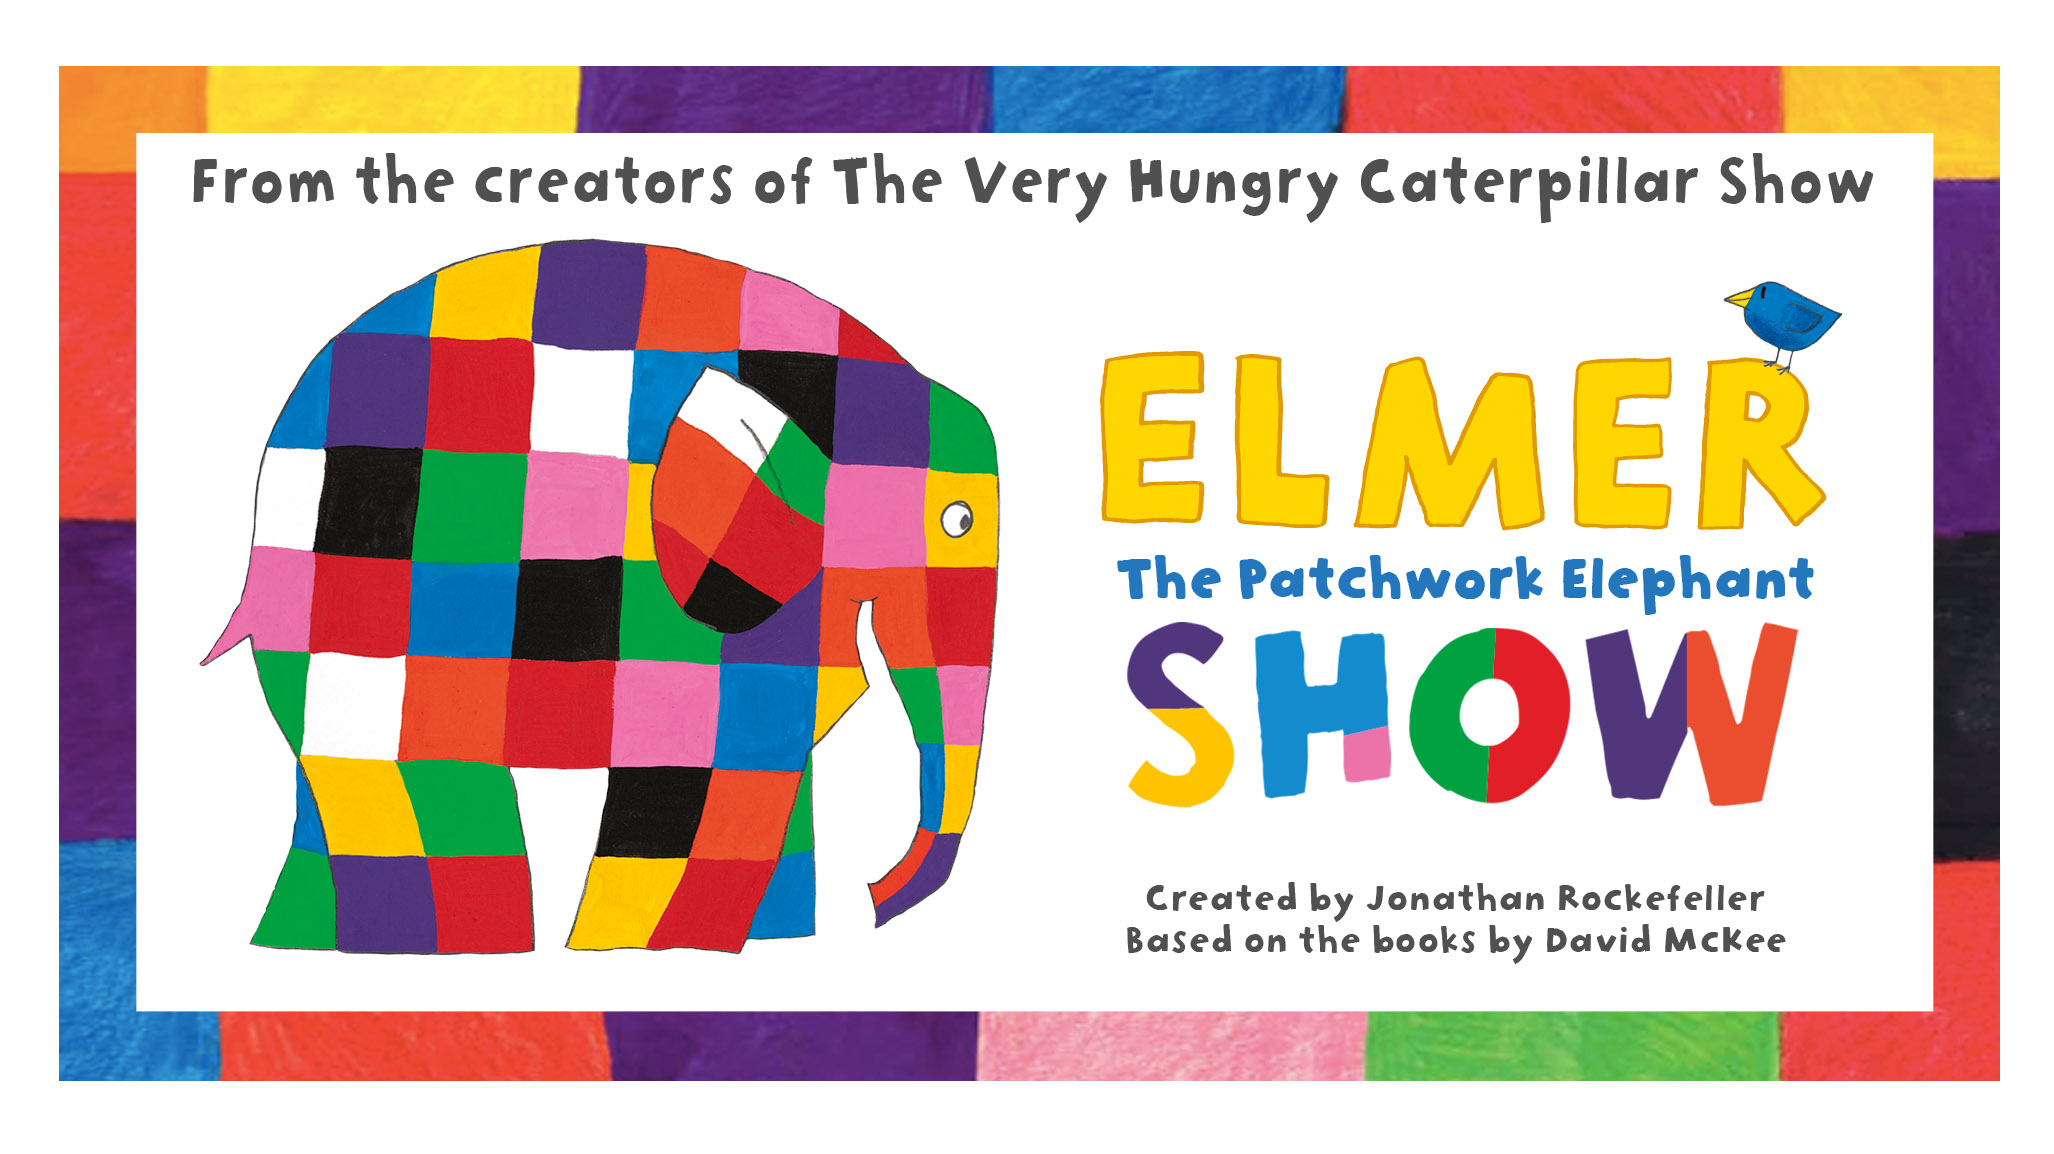 Elmer the Patchwork Elephant Show